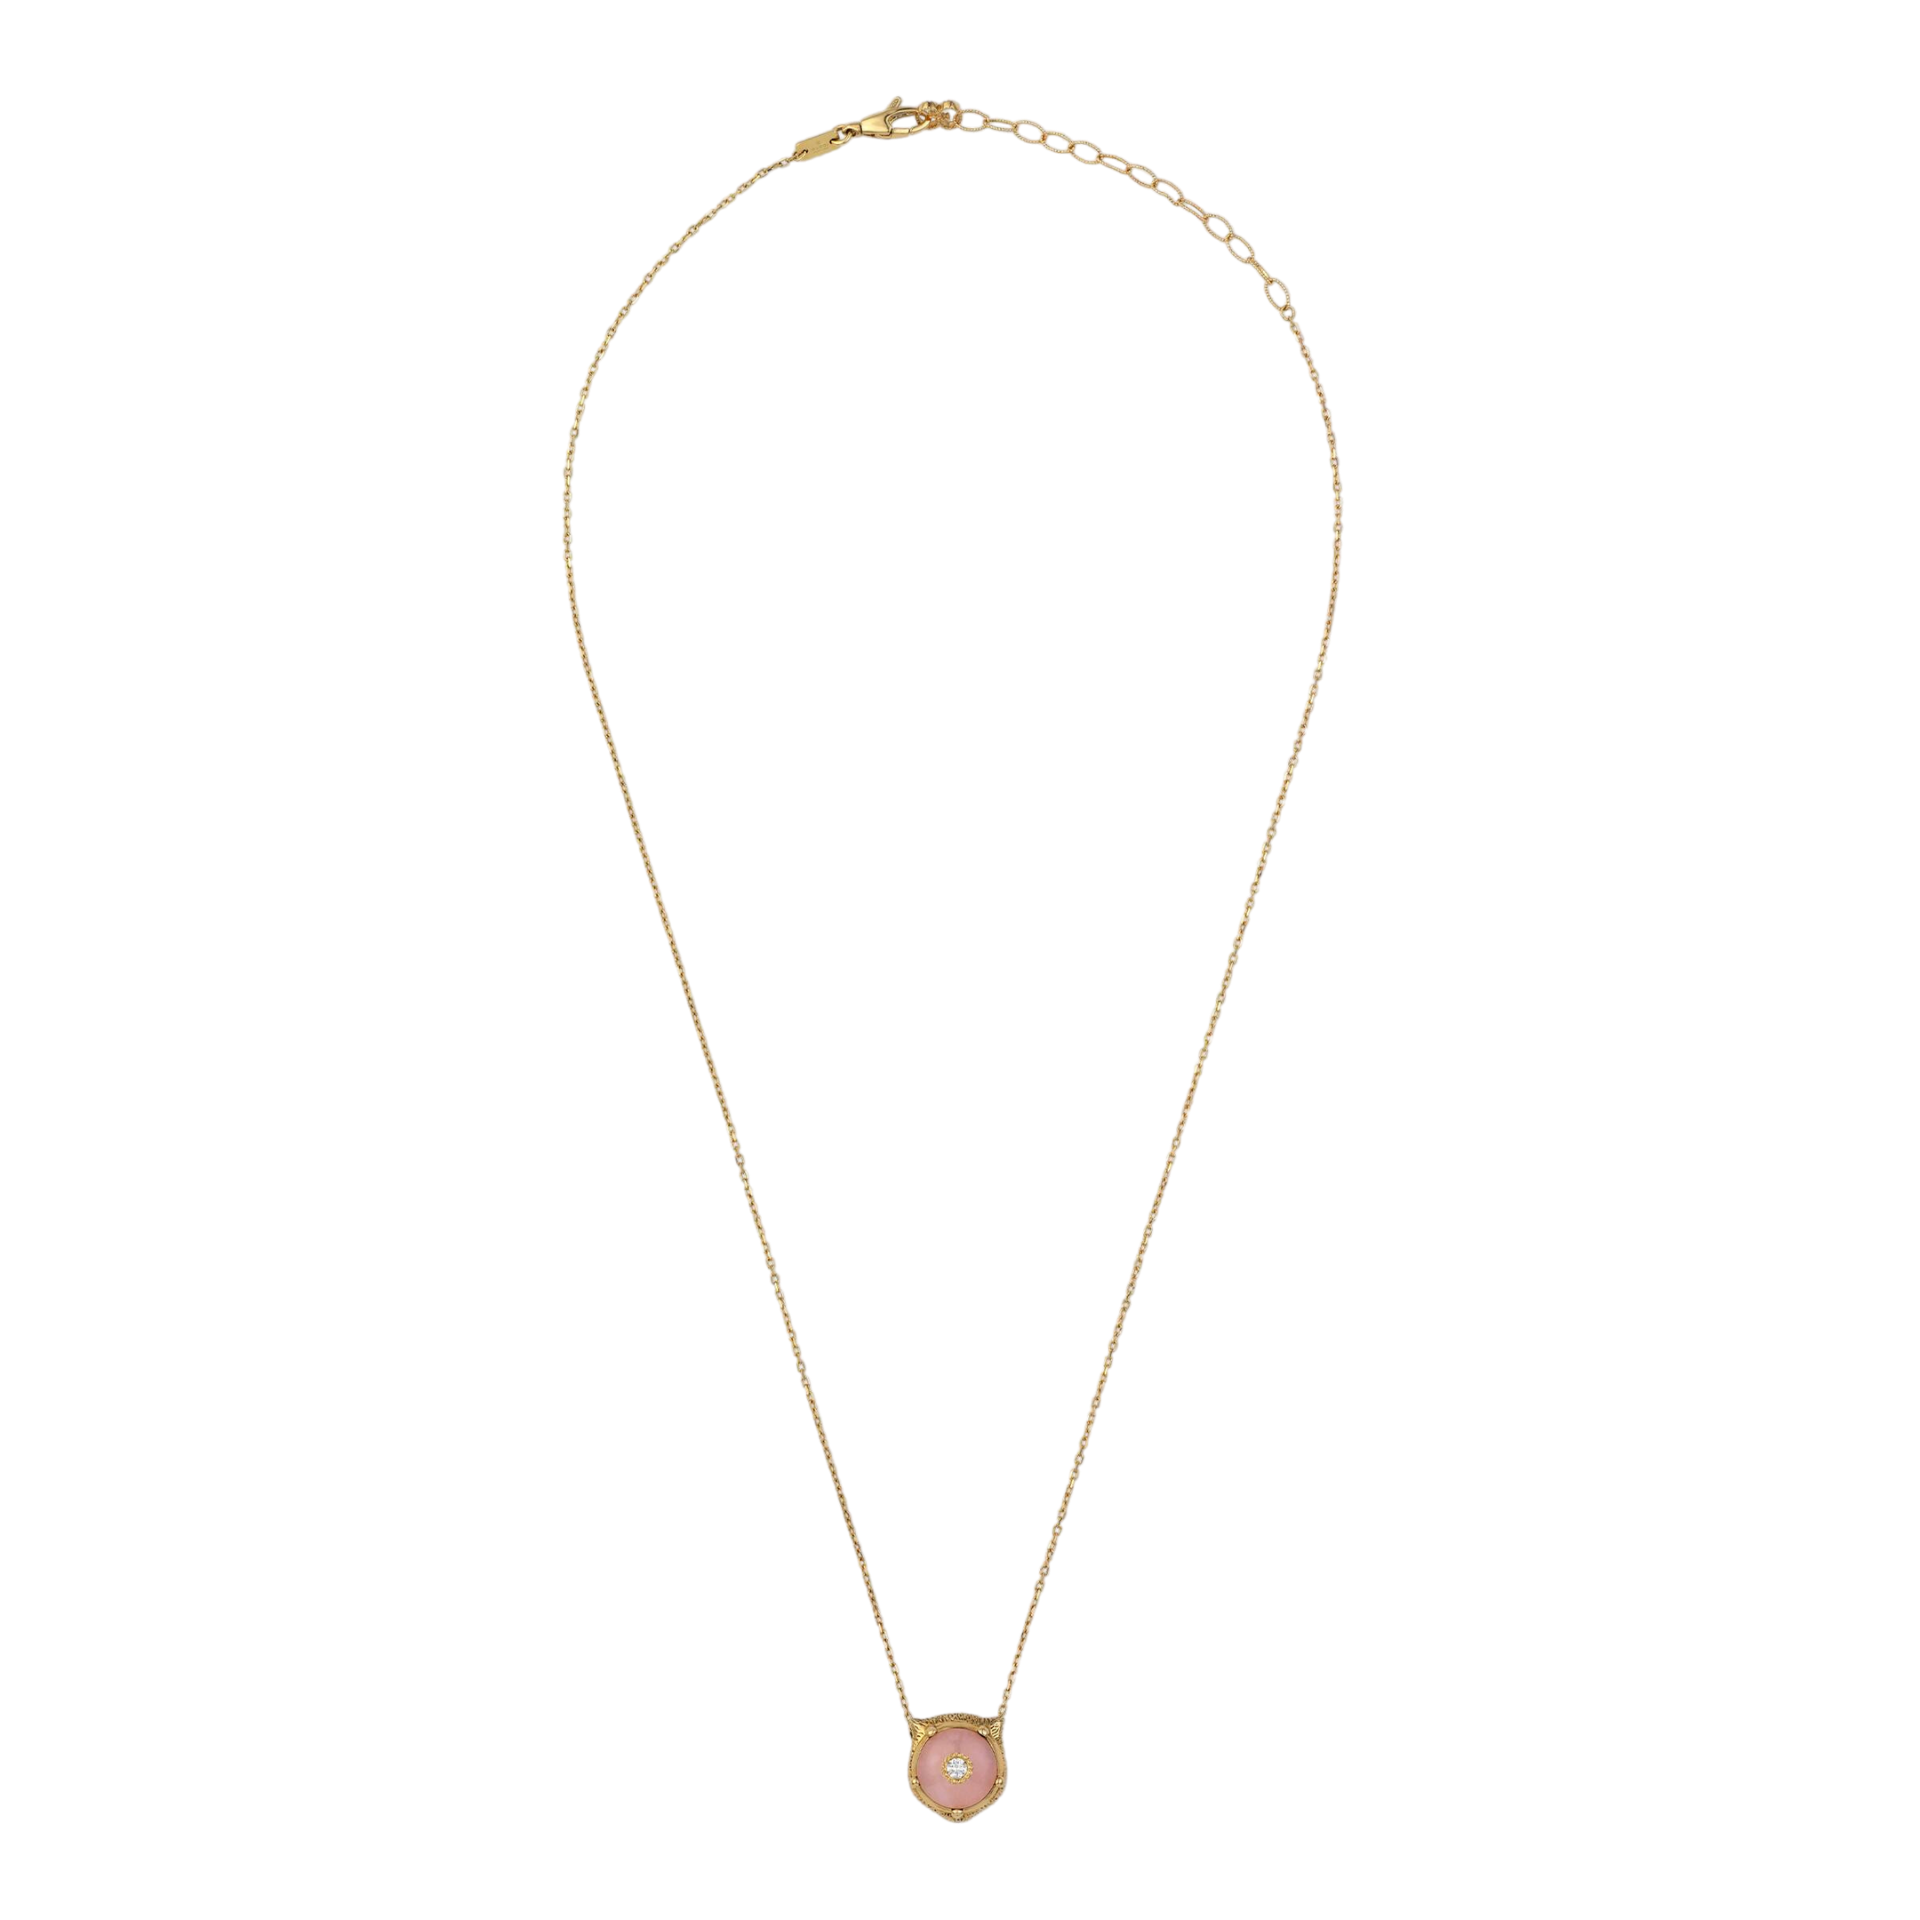 Le Marché des Merveilles Necklace in 18k Yellow Gold with Pink Opal and Diamonds - Orsini Jewellers NZ